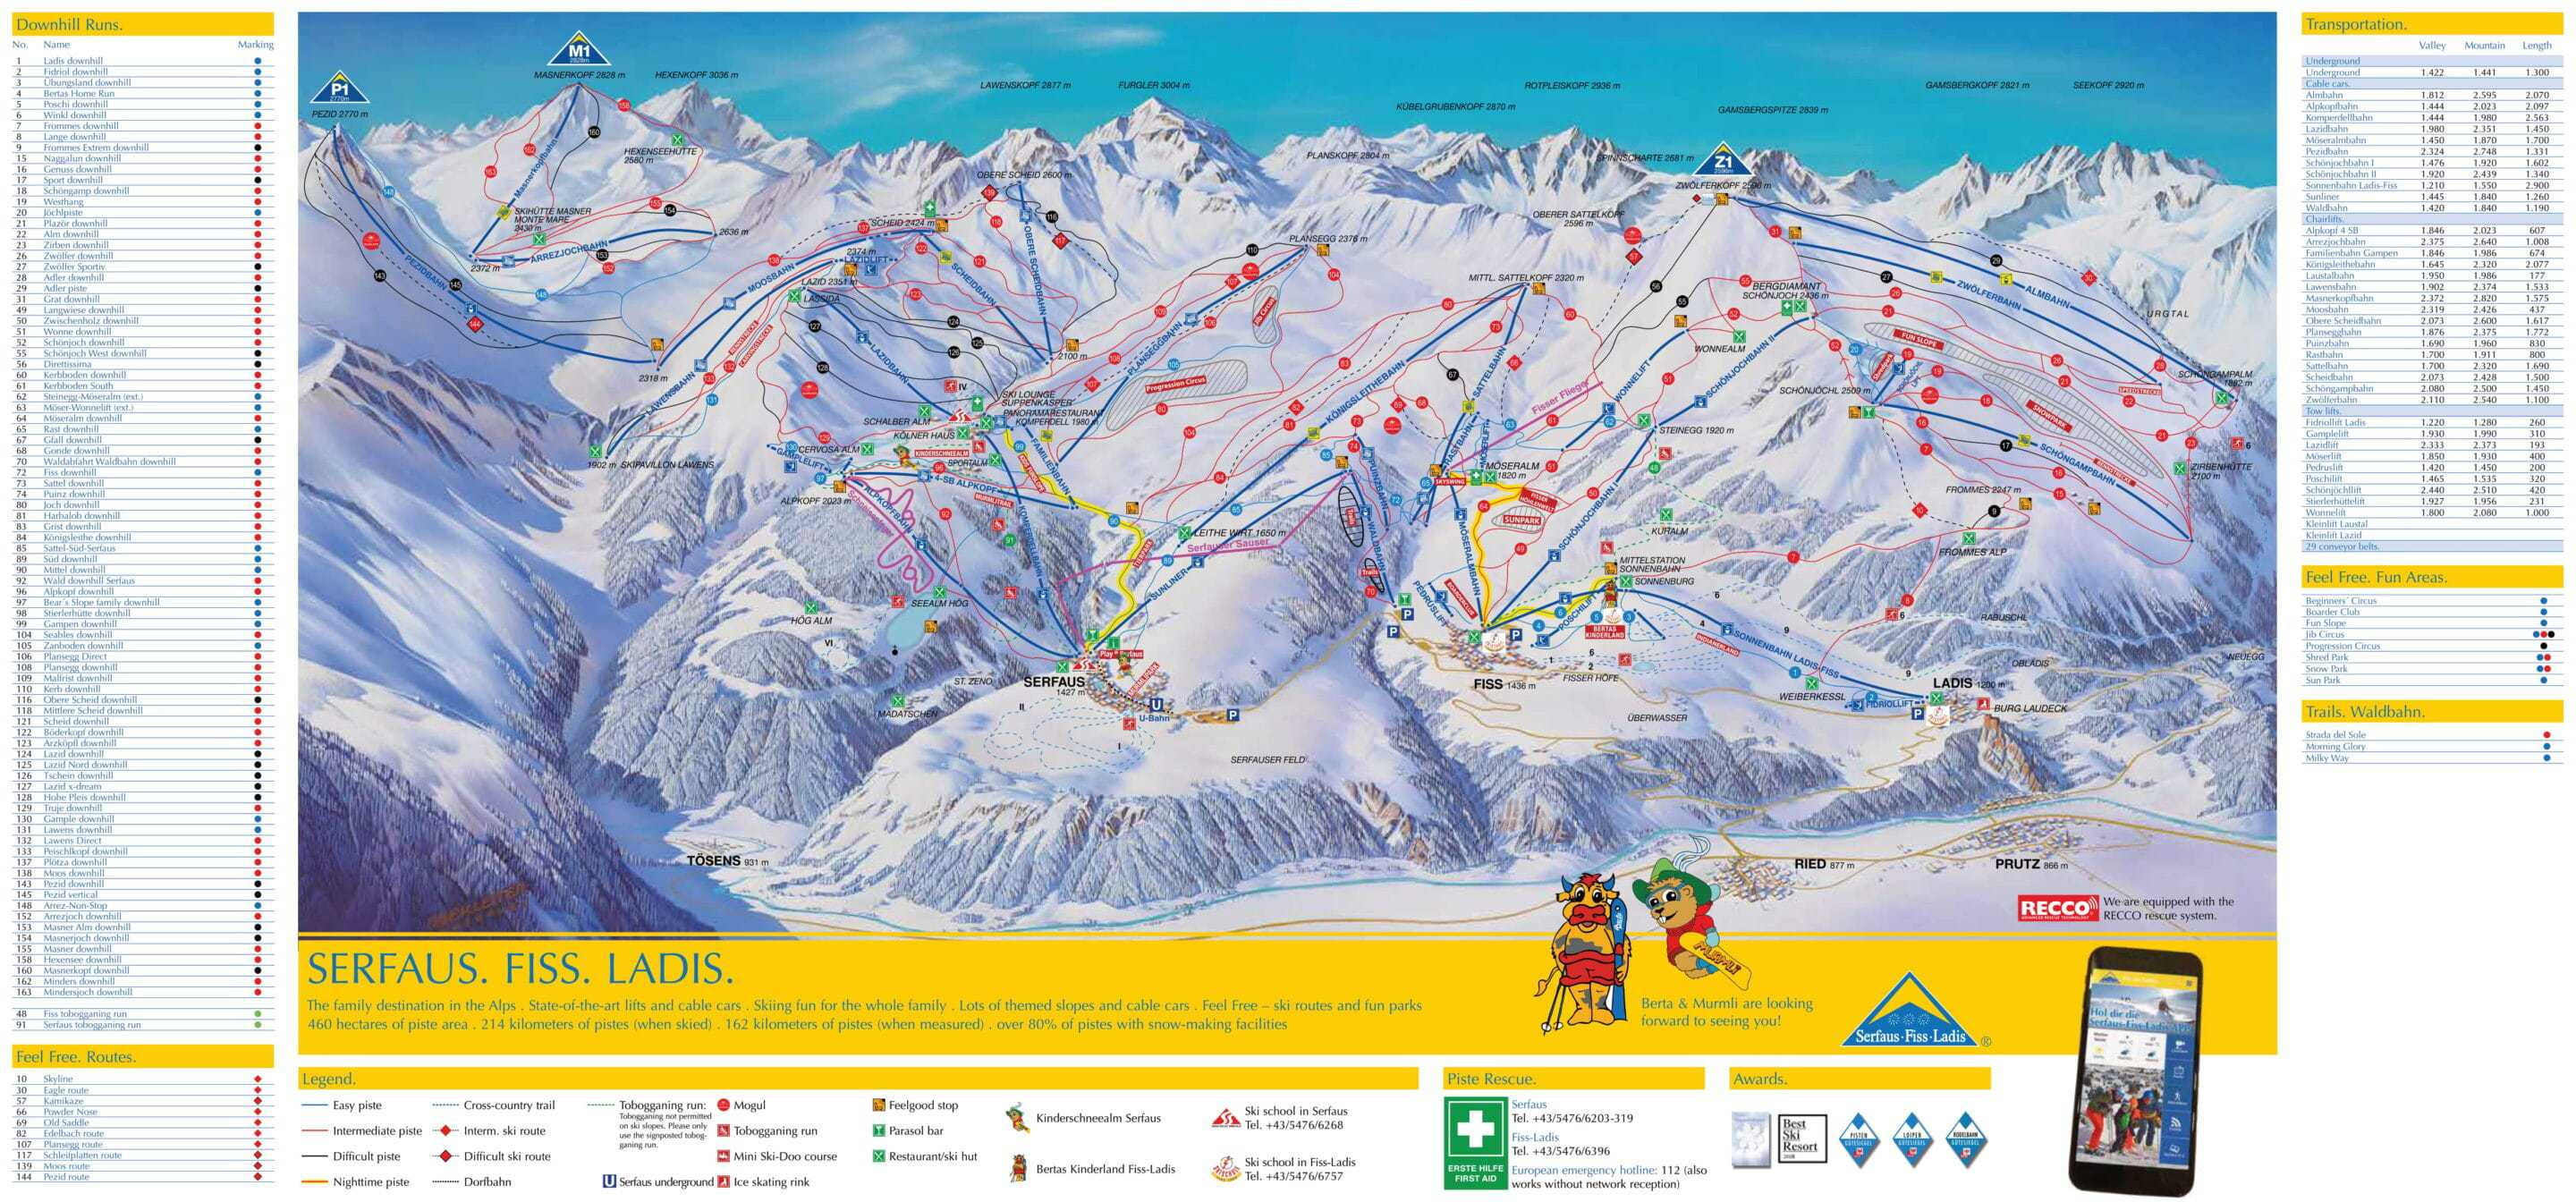 strig Serfaus Fiss Ladis Piste Map 2020 1 scaled